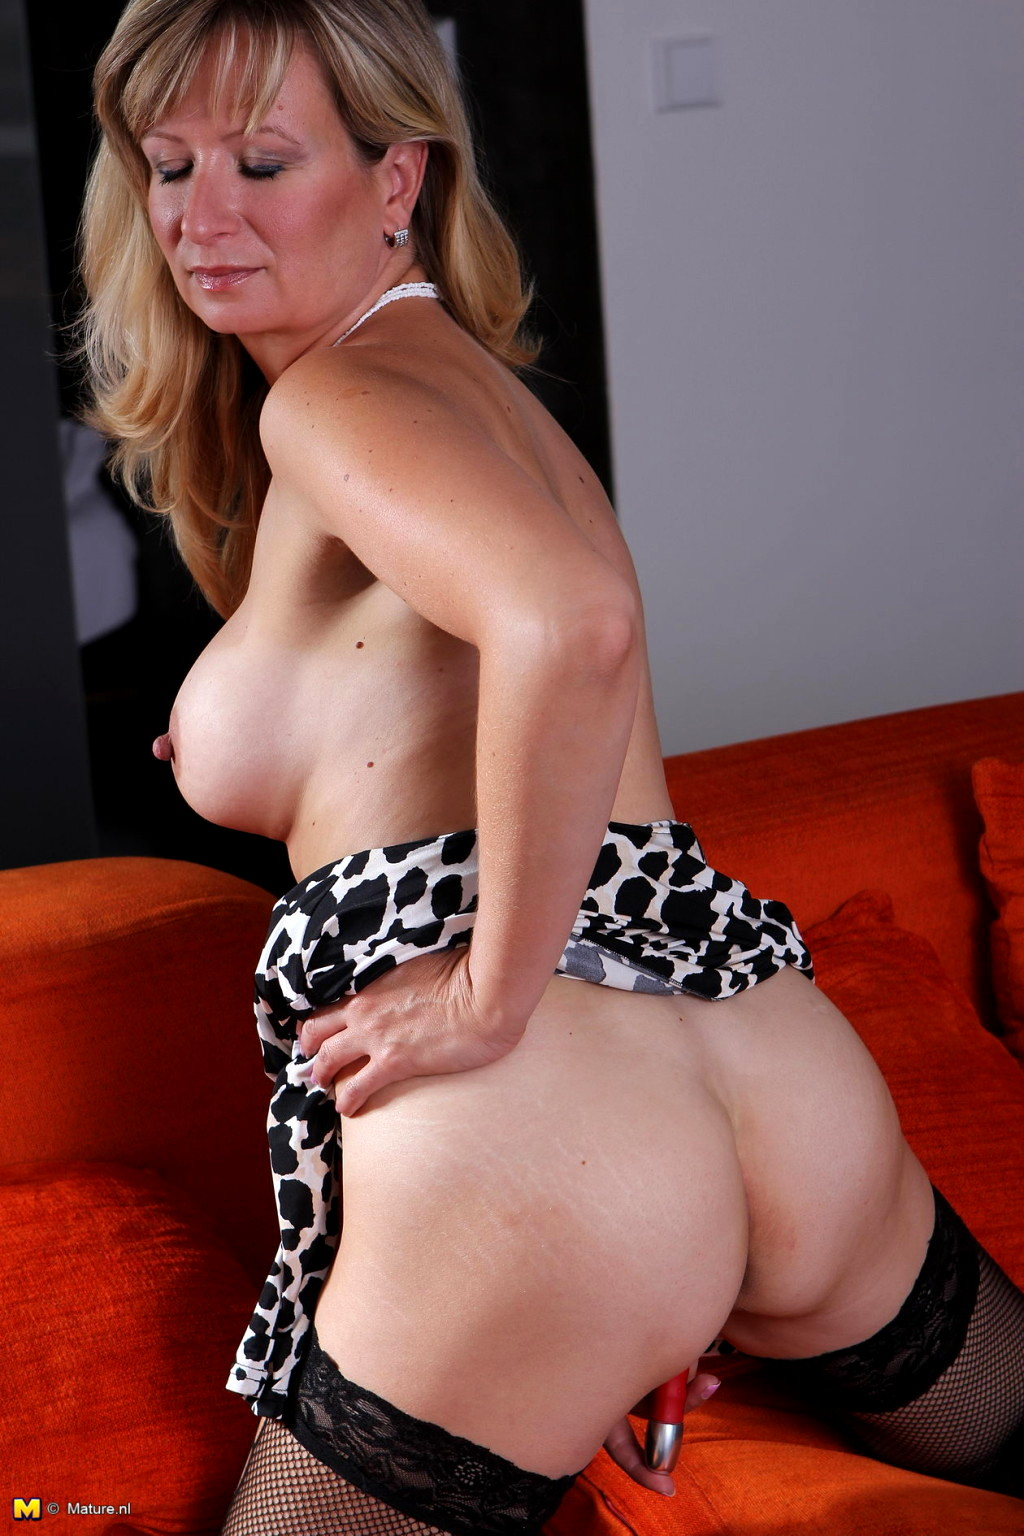 Mature Nl Maturenl Model Extreme Blonde Biography Sex Hd Pics-7599